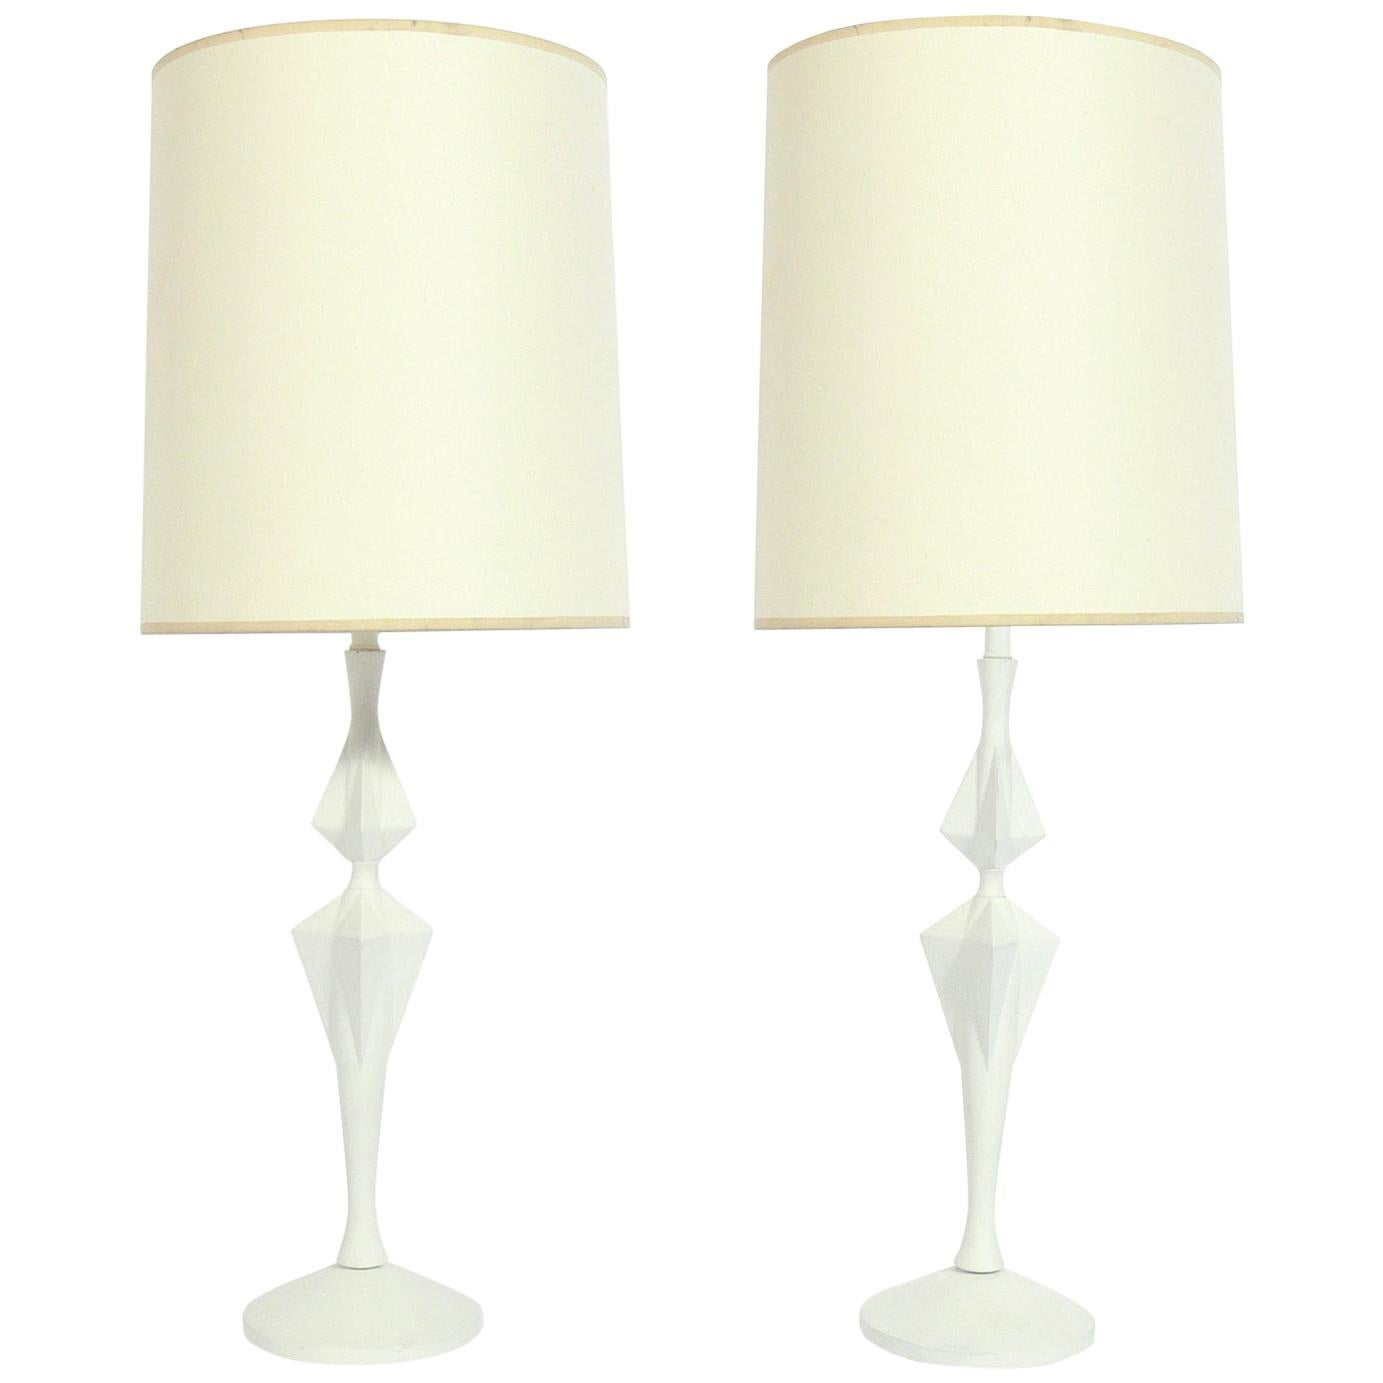 Sculptural White Lamps